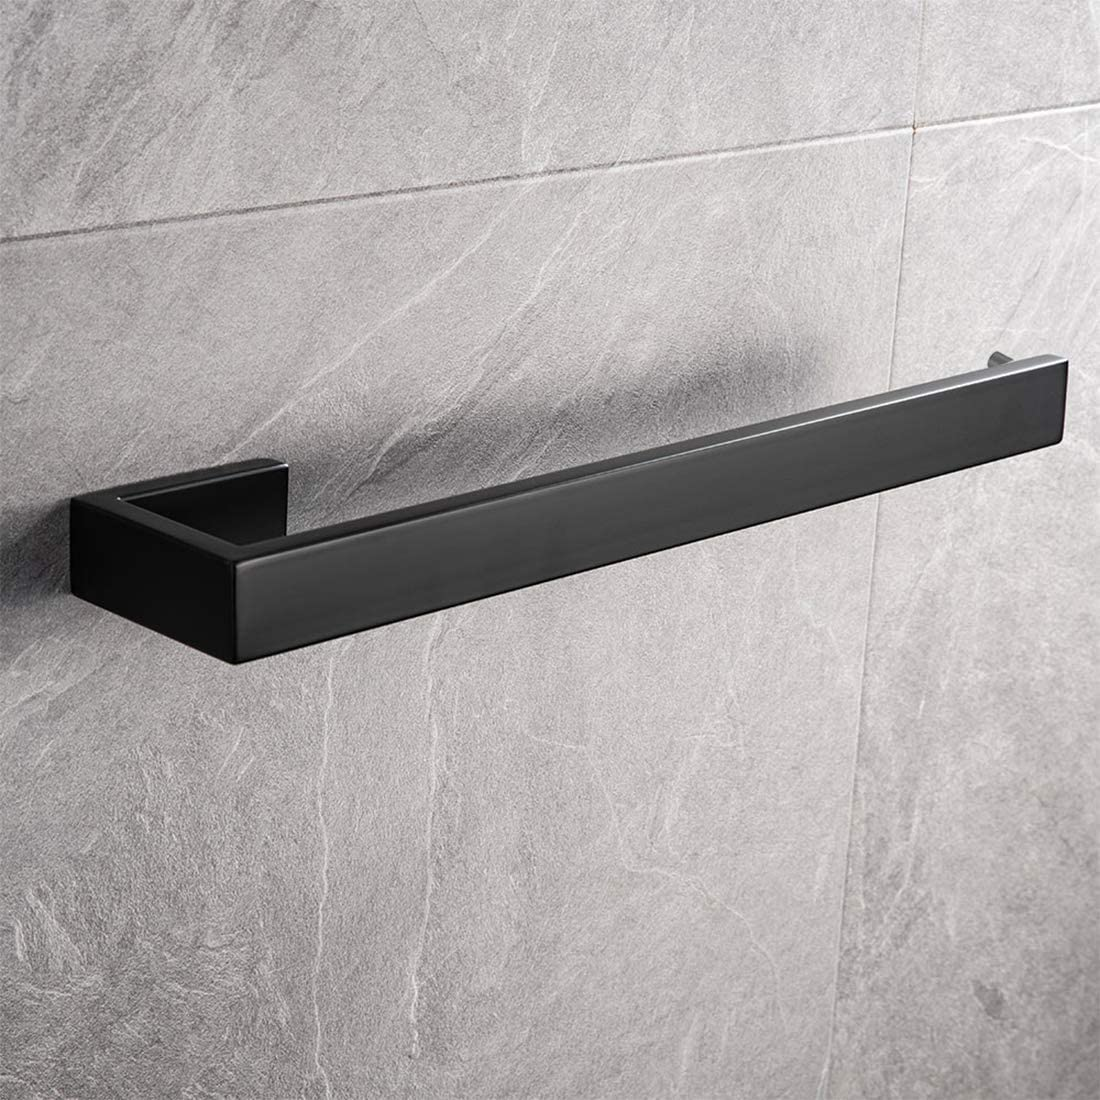 Aothpher Towel Rail for Bathroom SUS304 Stainless Steel Modern Towel Ring Wall Mounted Hand Towel Holder 35cm Matte Black